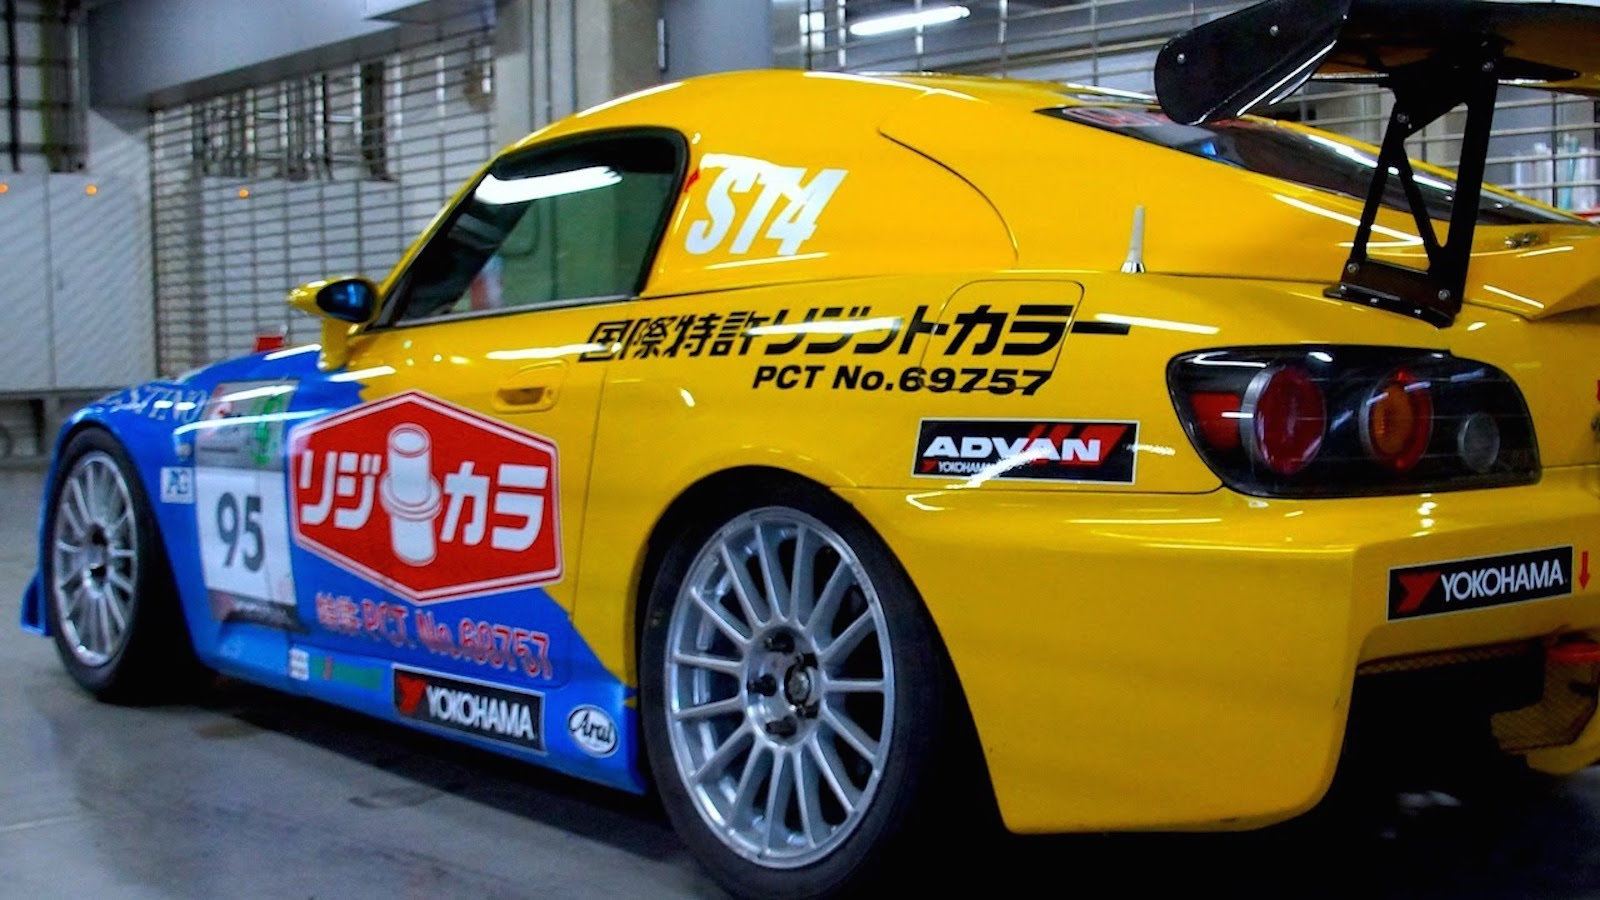 Differences Between Time Attack and Wheel-to-Wheel Racing